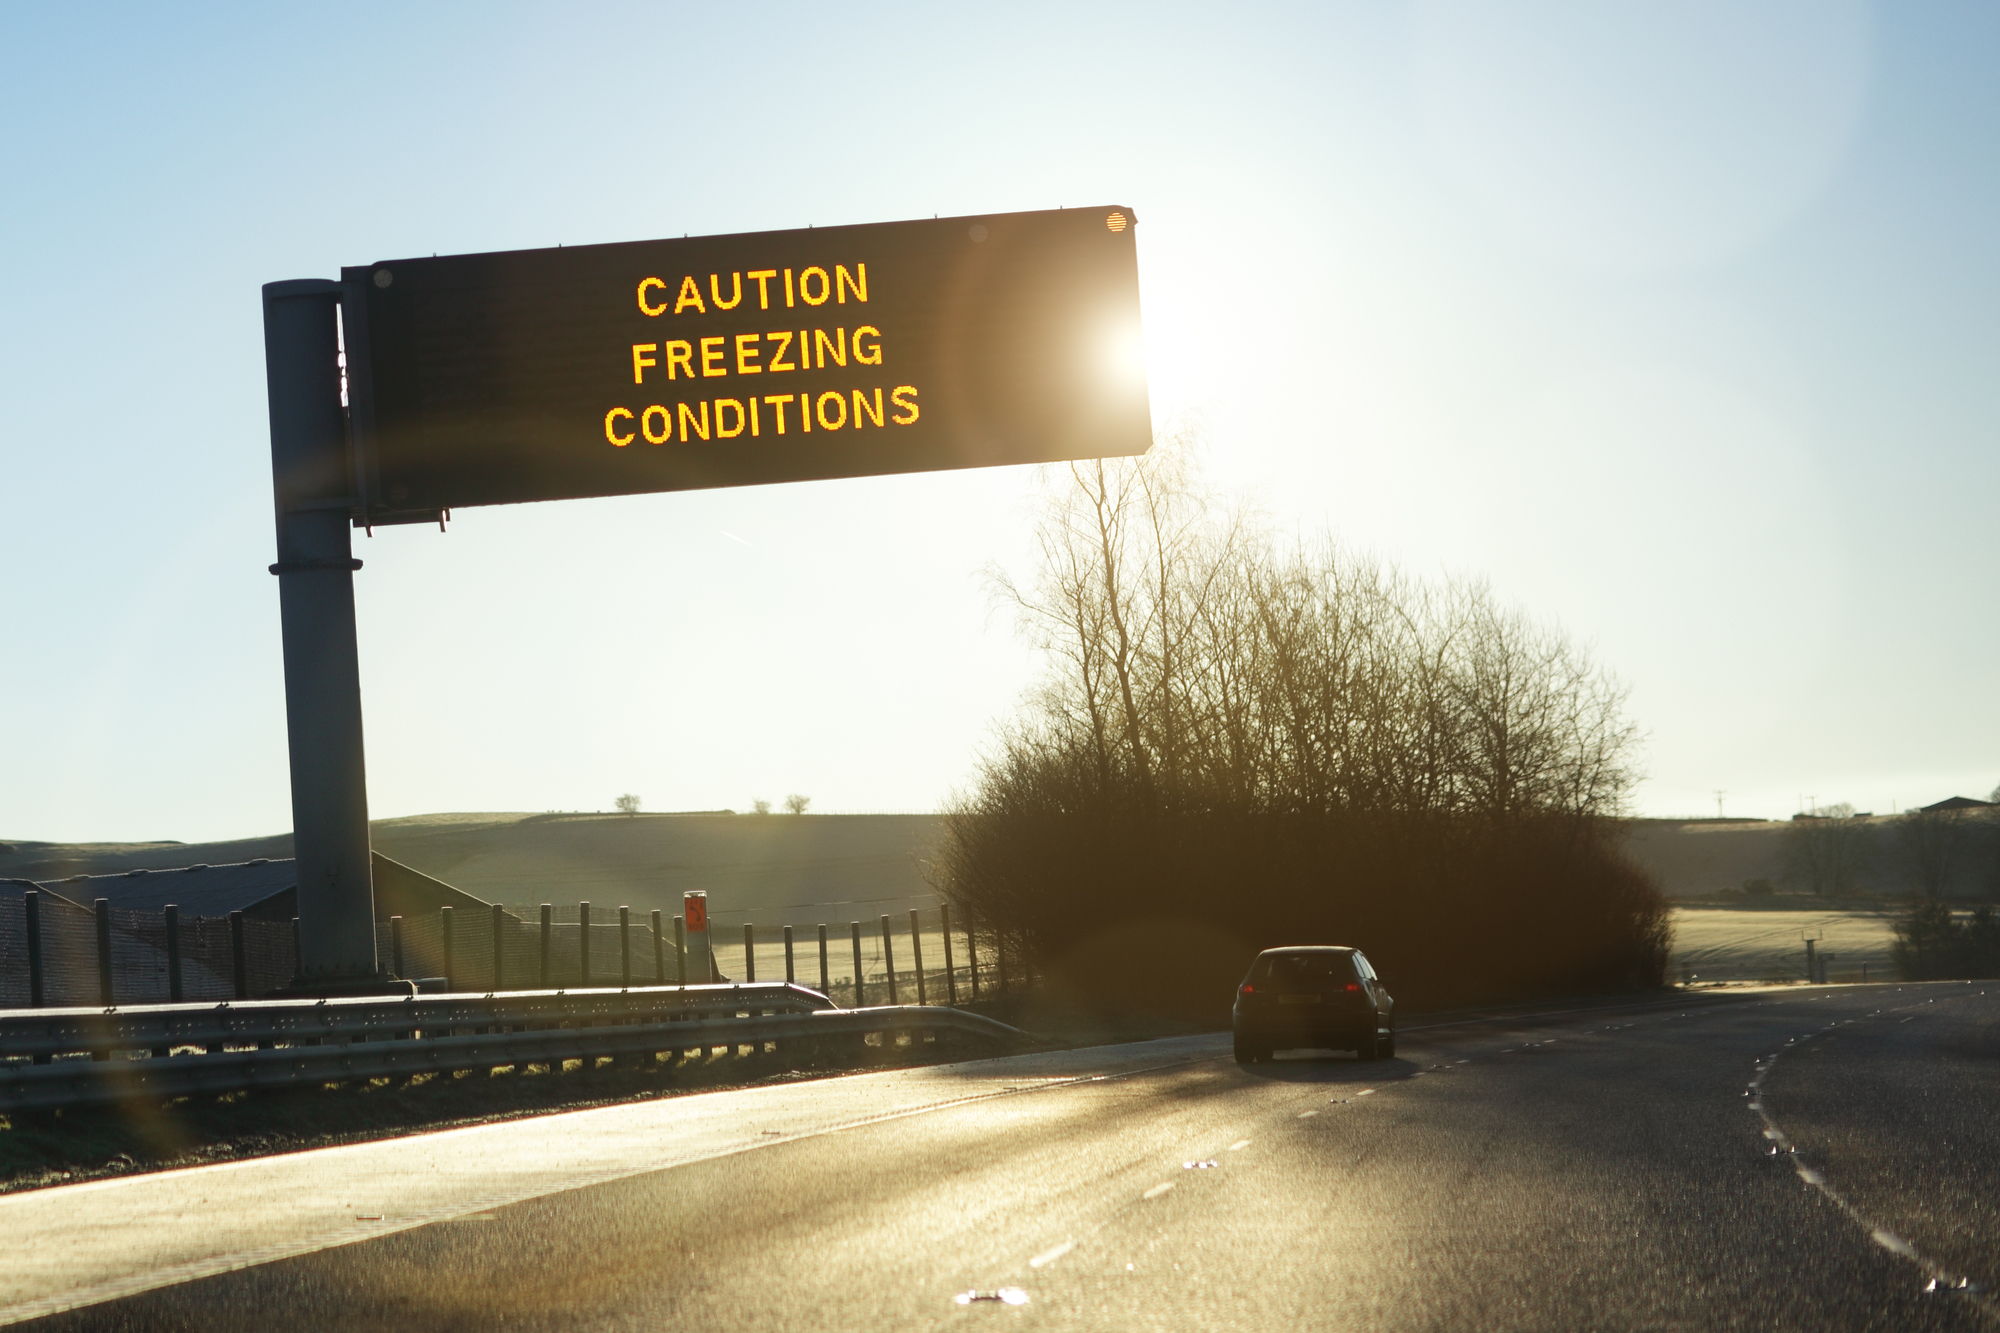 road sign in early morning winter sunshine reading caution freezing conditions